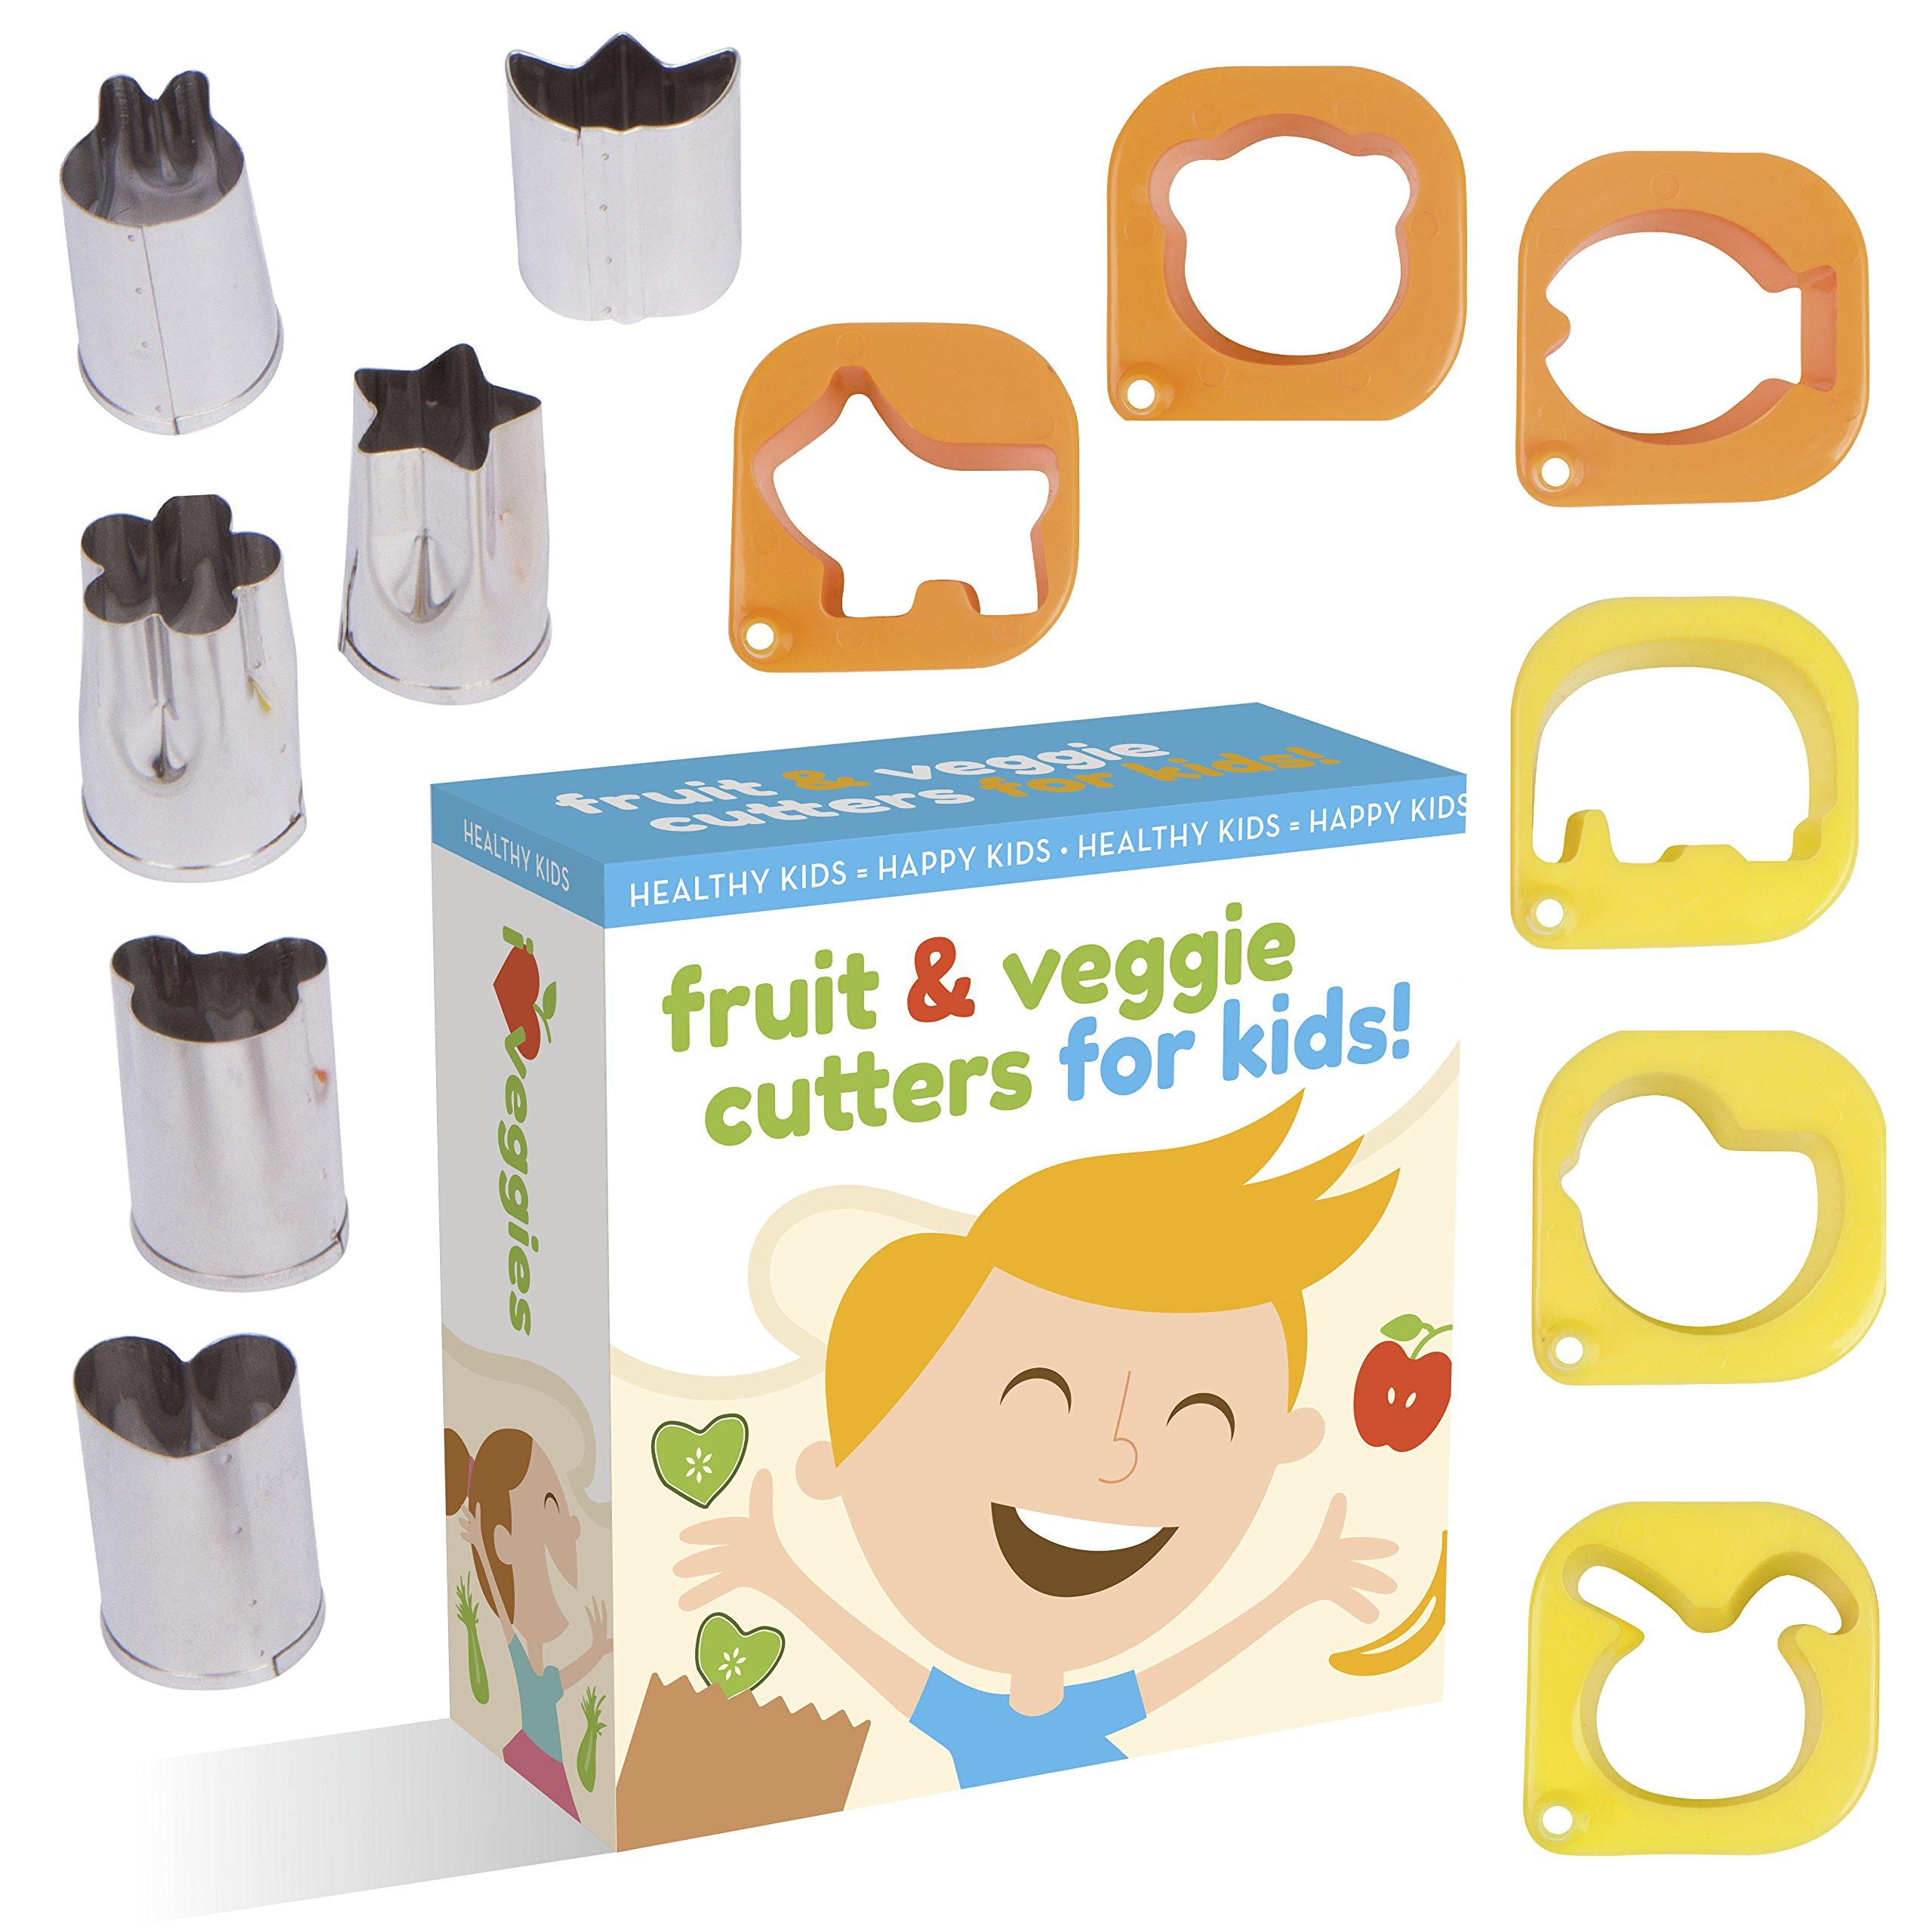 Fruit And Vegetable Cutter shape set For Kids By UpChefs - 12 Animal and Fun Shaped Mini cookie Cutter Mold Food Cutouts for Bento Lunch Boxes - Fruit & Veggie slicer press Stamp set for picky Eaters